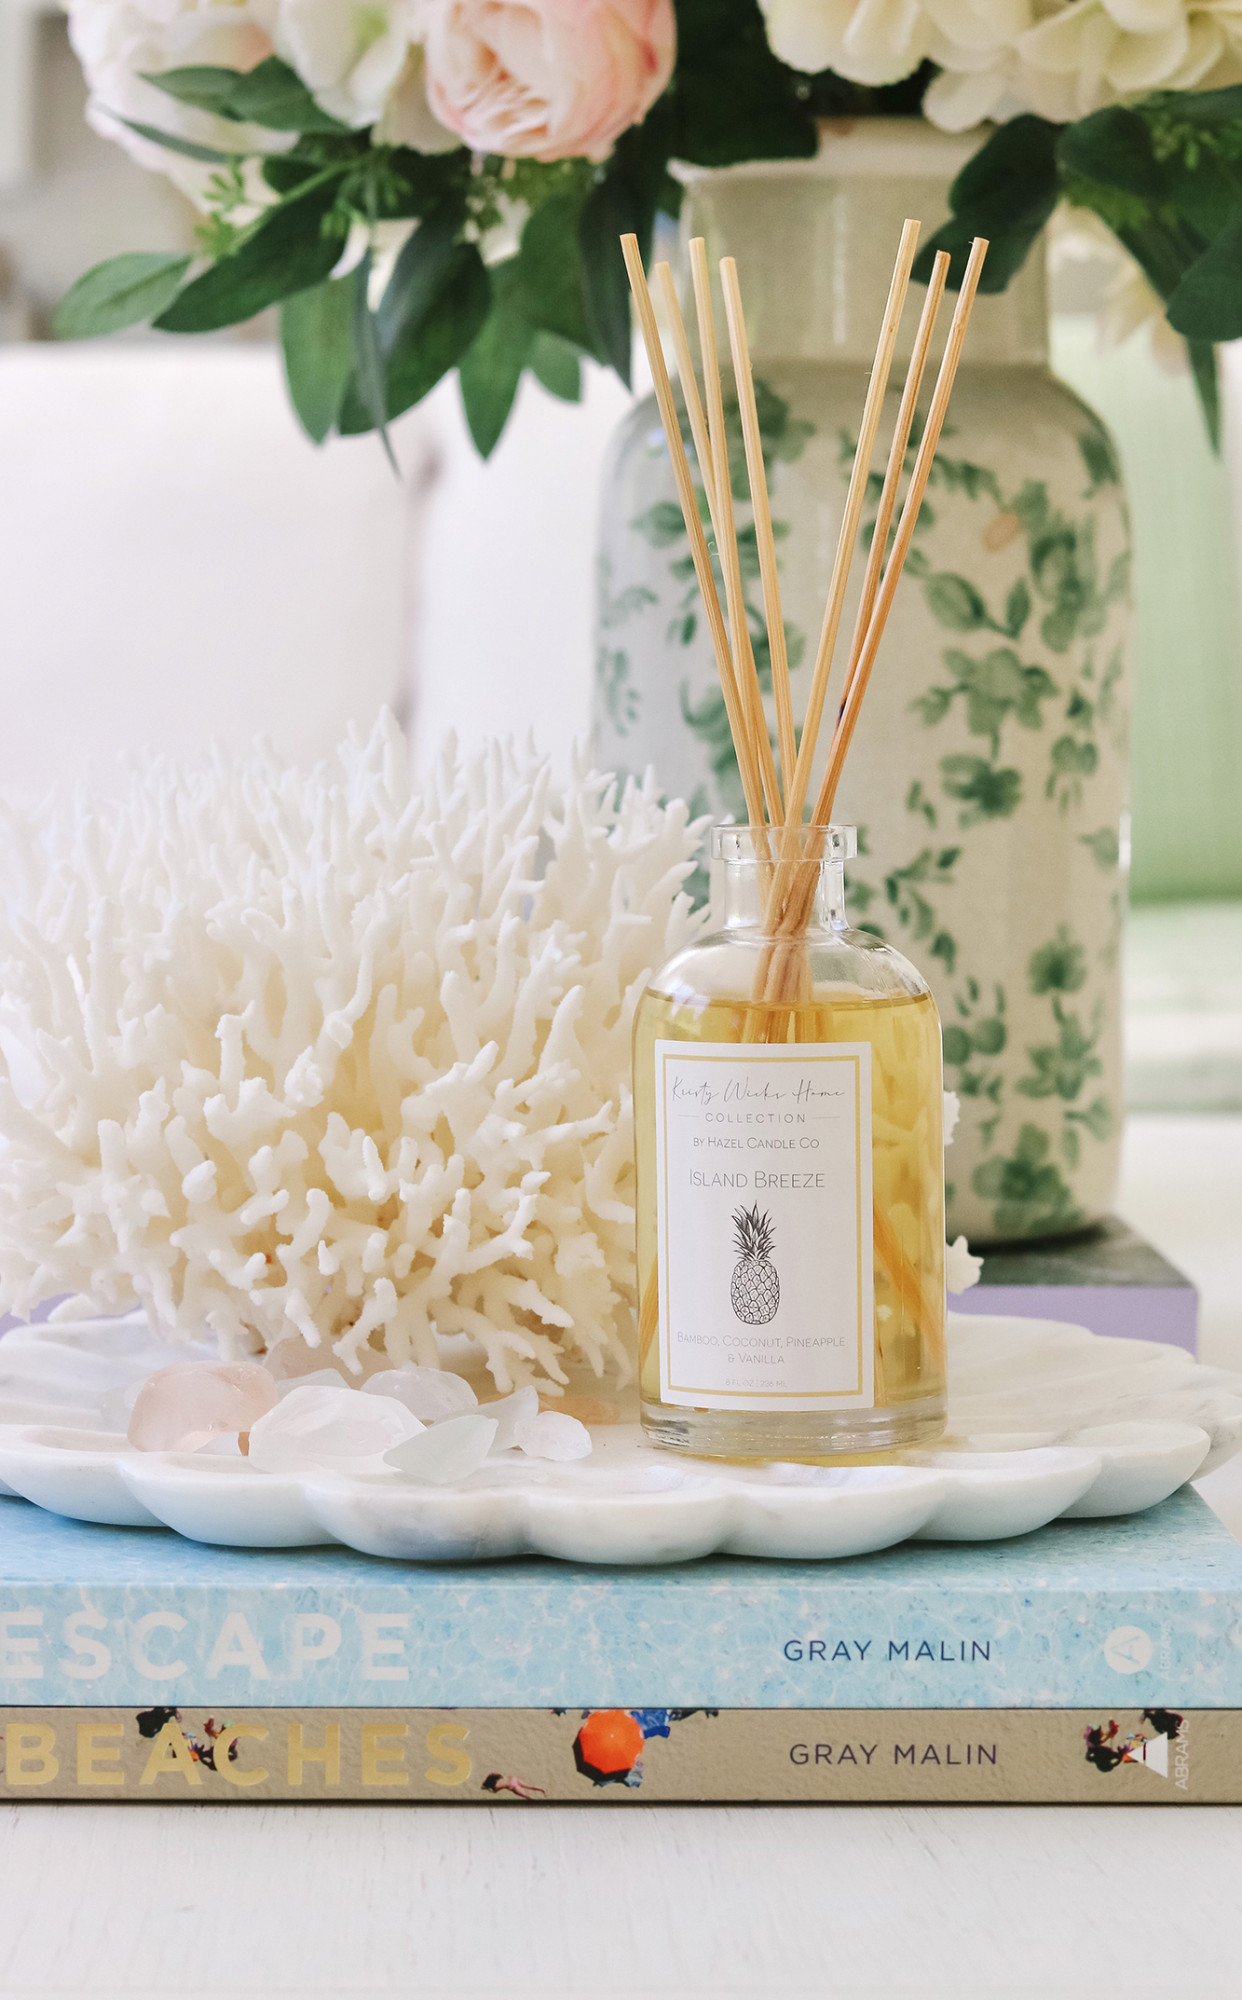 My Summer Diffuser is now available for purchase | Kristy Wicks Home is now live! 100% of the profits of this diffuser is going to charity - so excited!